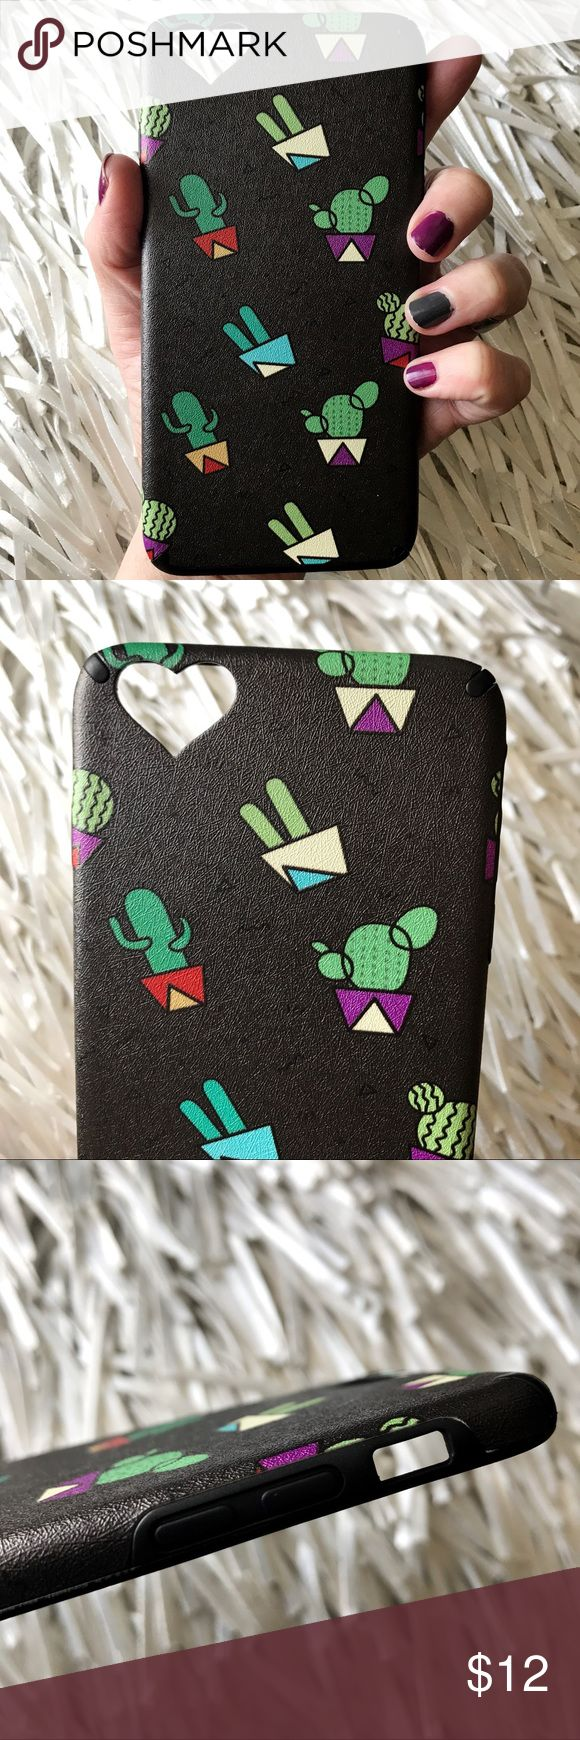 NEW iPhone 6/6s Plus SOFT TPU Cactus 🌵Case Cover ▪️Fits iPhone 6 & 6s Plus Models   ▪️Soft Thick Shock-resistant TPU  ▪️Same or Next Business Day Shipping , Check My Stats! Accessories Phone Cases